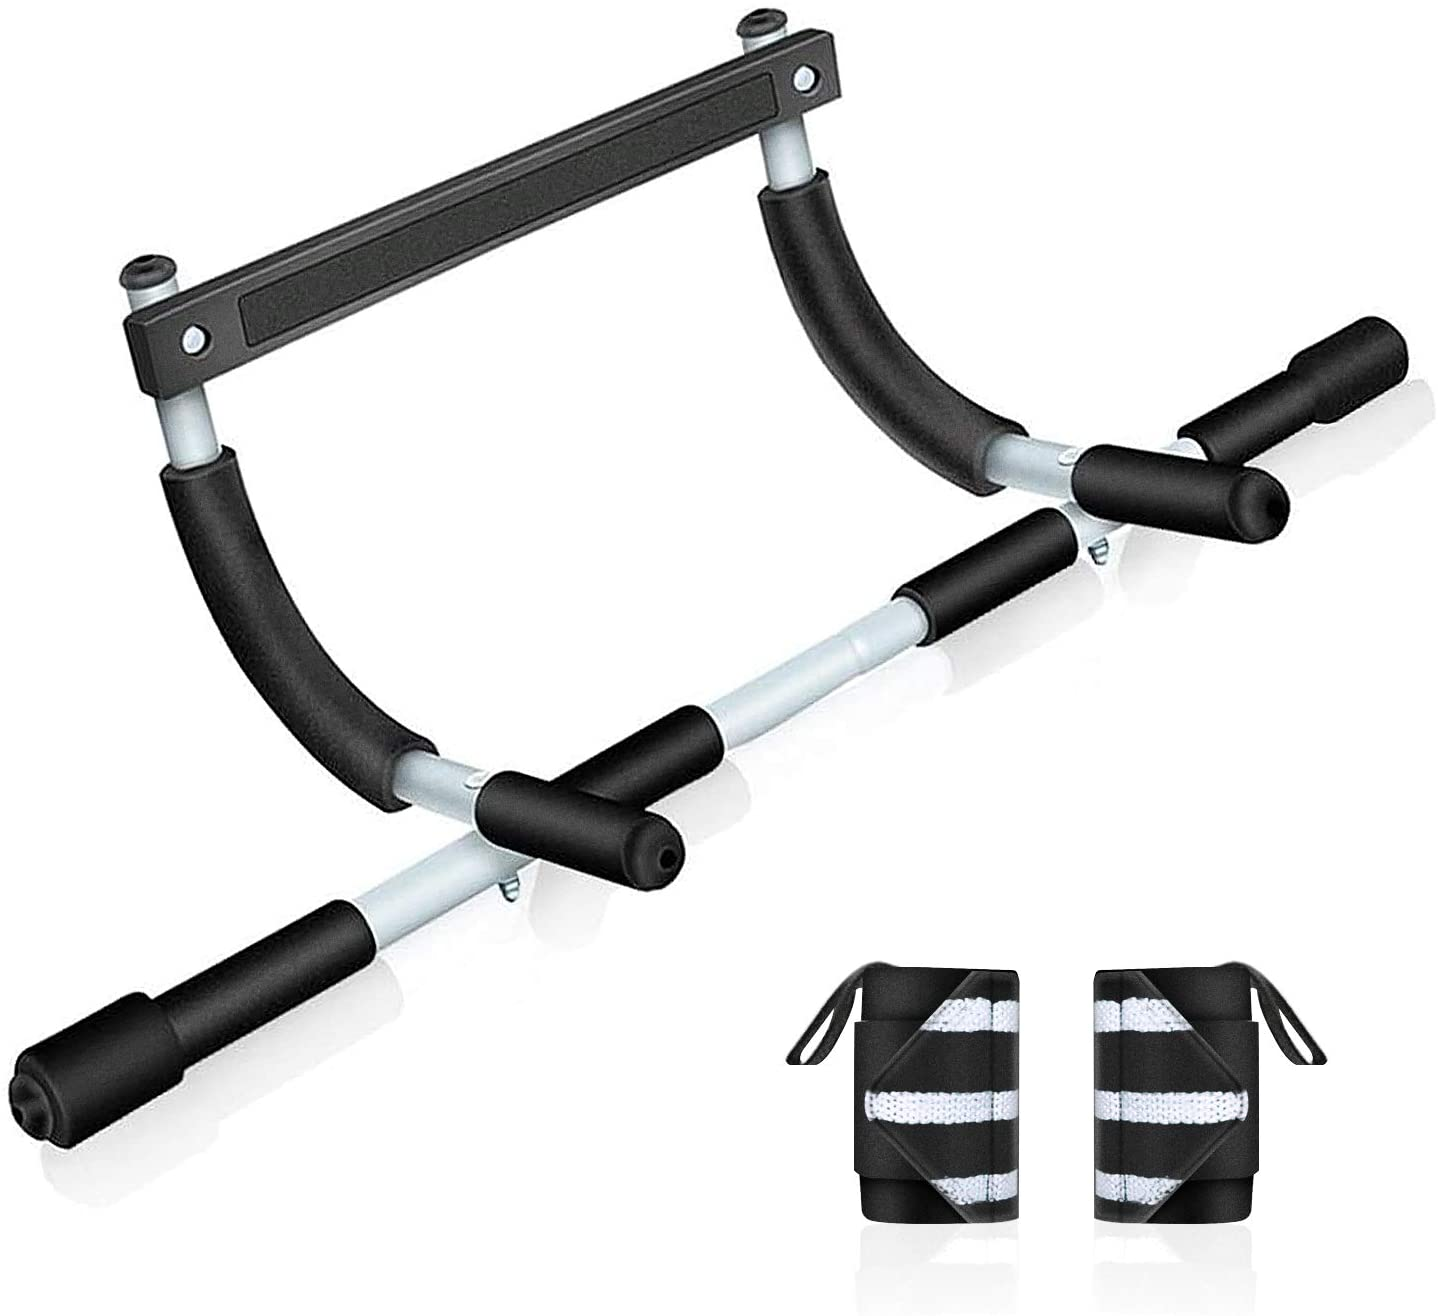 BZK Pull Up Bar for Doorway - Multifunction Chin Up Bar Strength Training Equipment for Home Gym Exercise